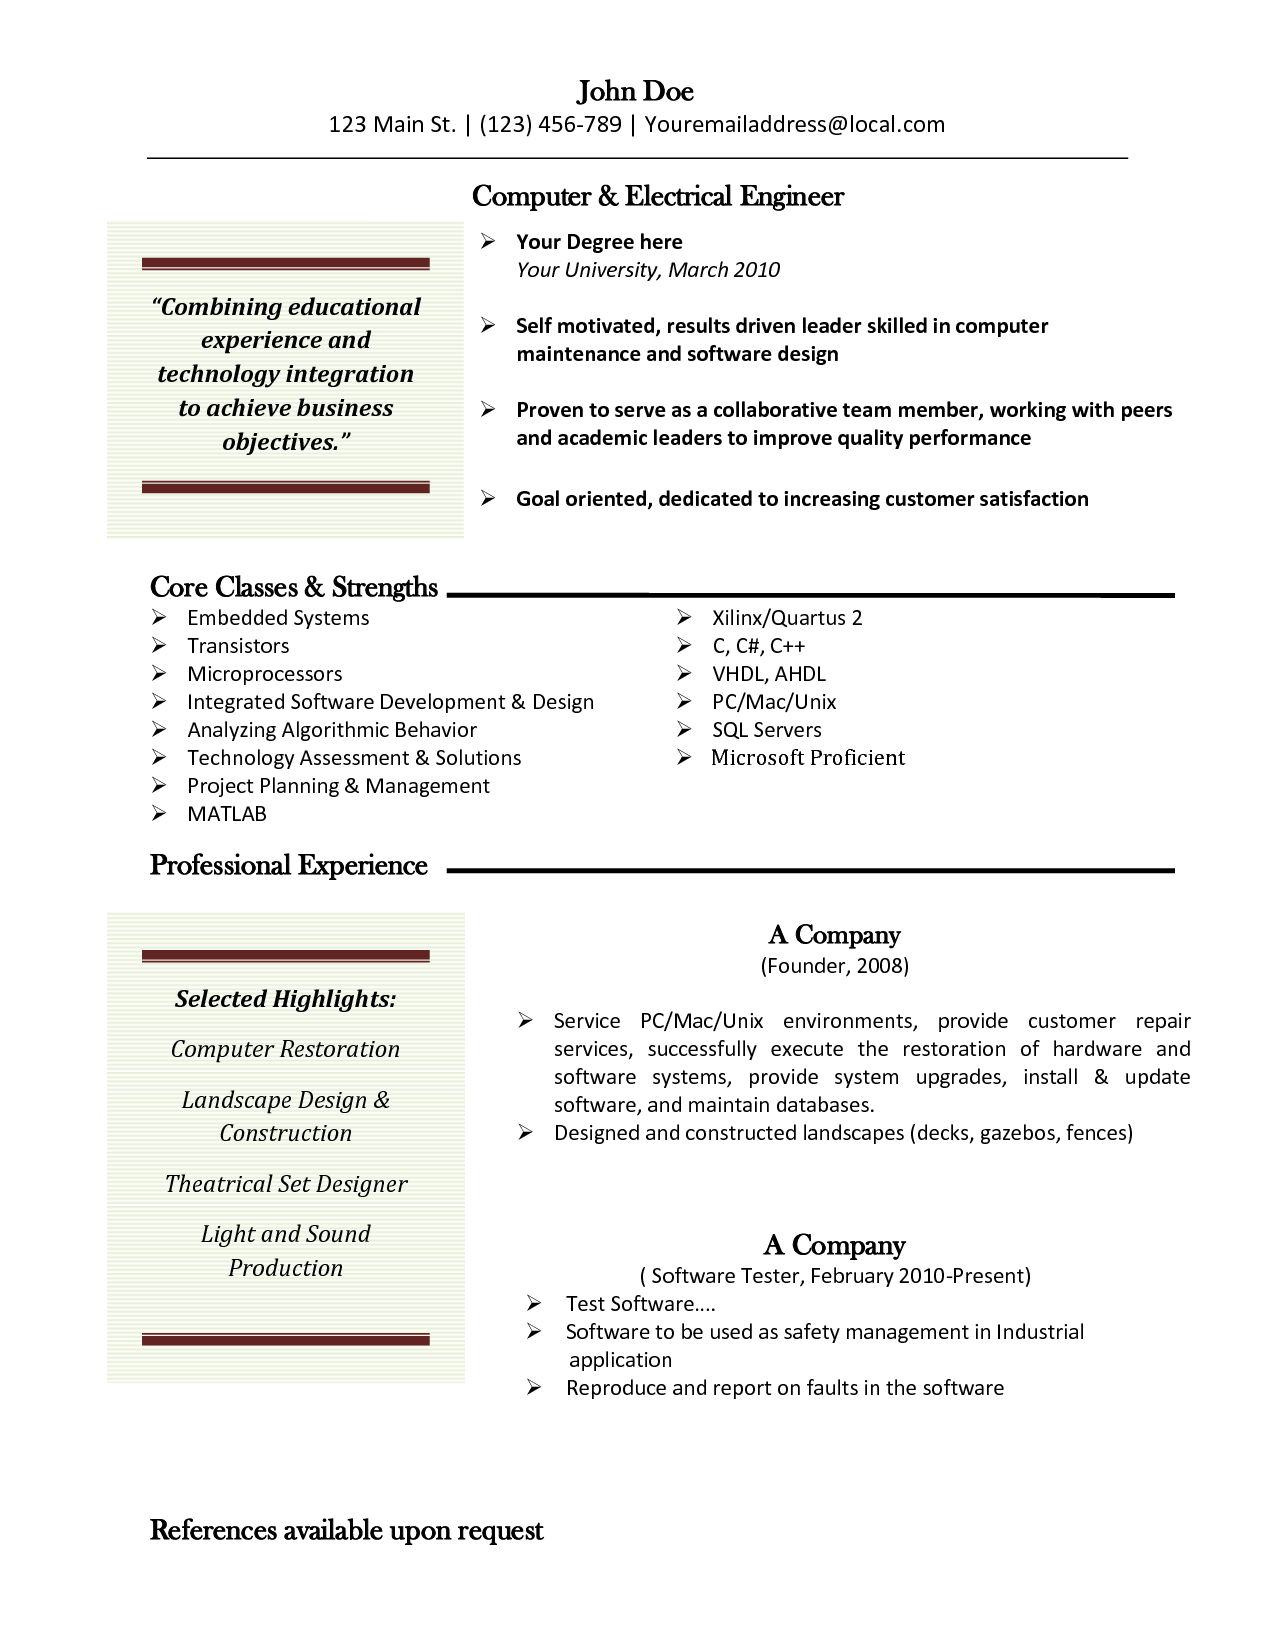 Free Resume Templates For Download Freeresumetemplatesformaccqjykibi 1275×1650  Cv